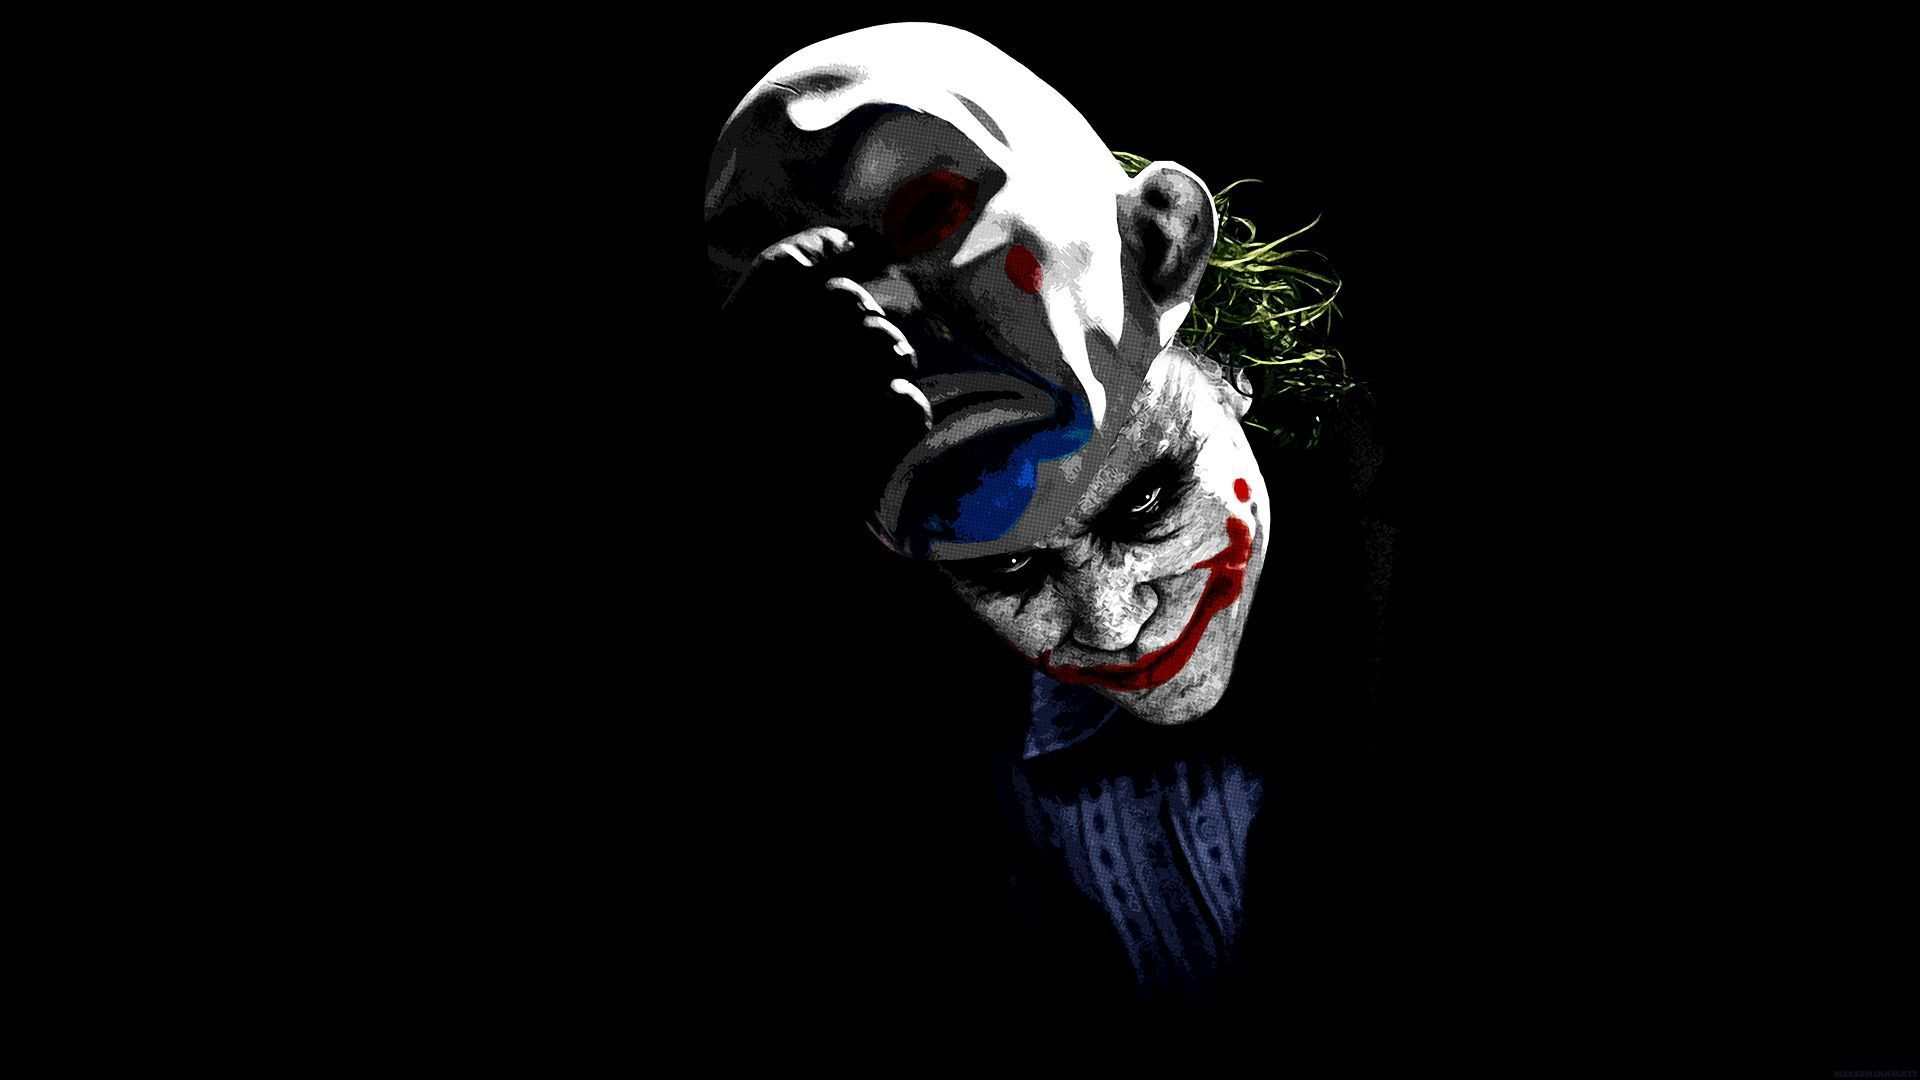 Joker Ipod Wallpapers Top Free Joker Ipod Backgrounds Wallpaperaccess